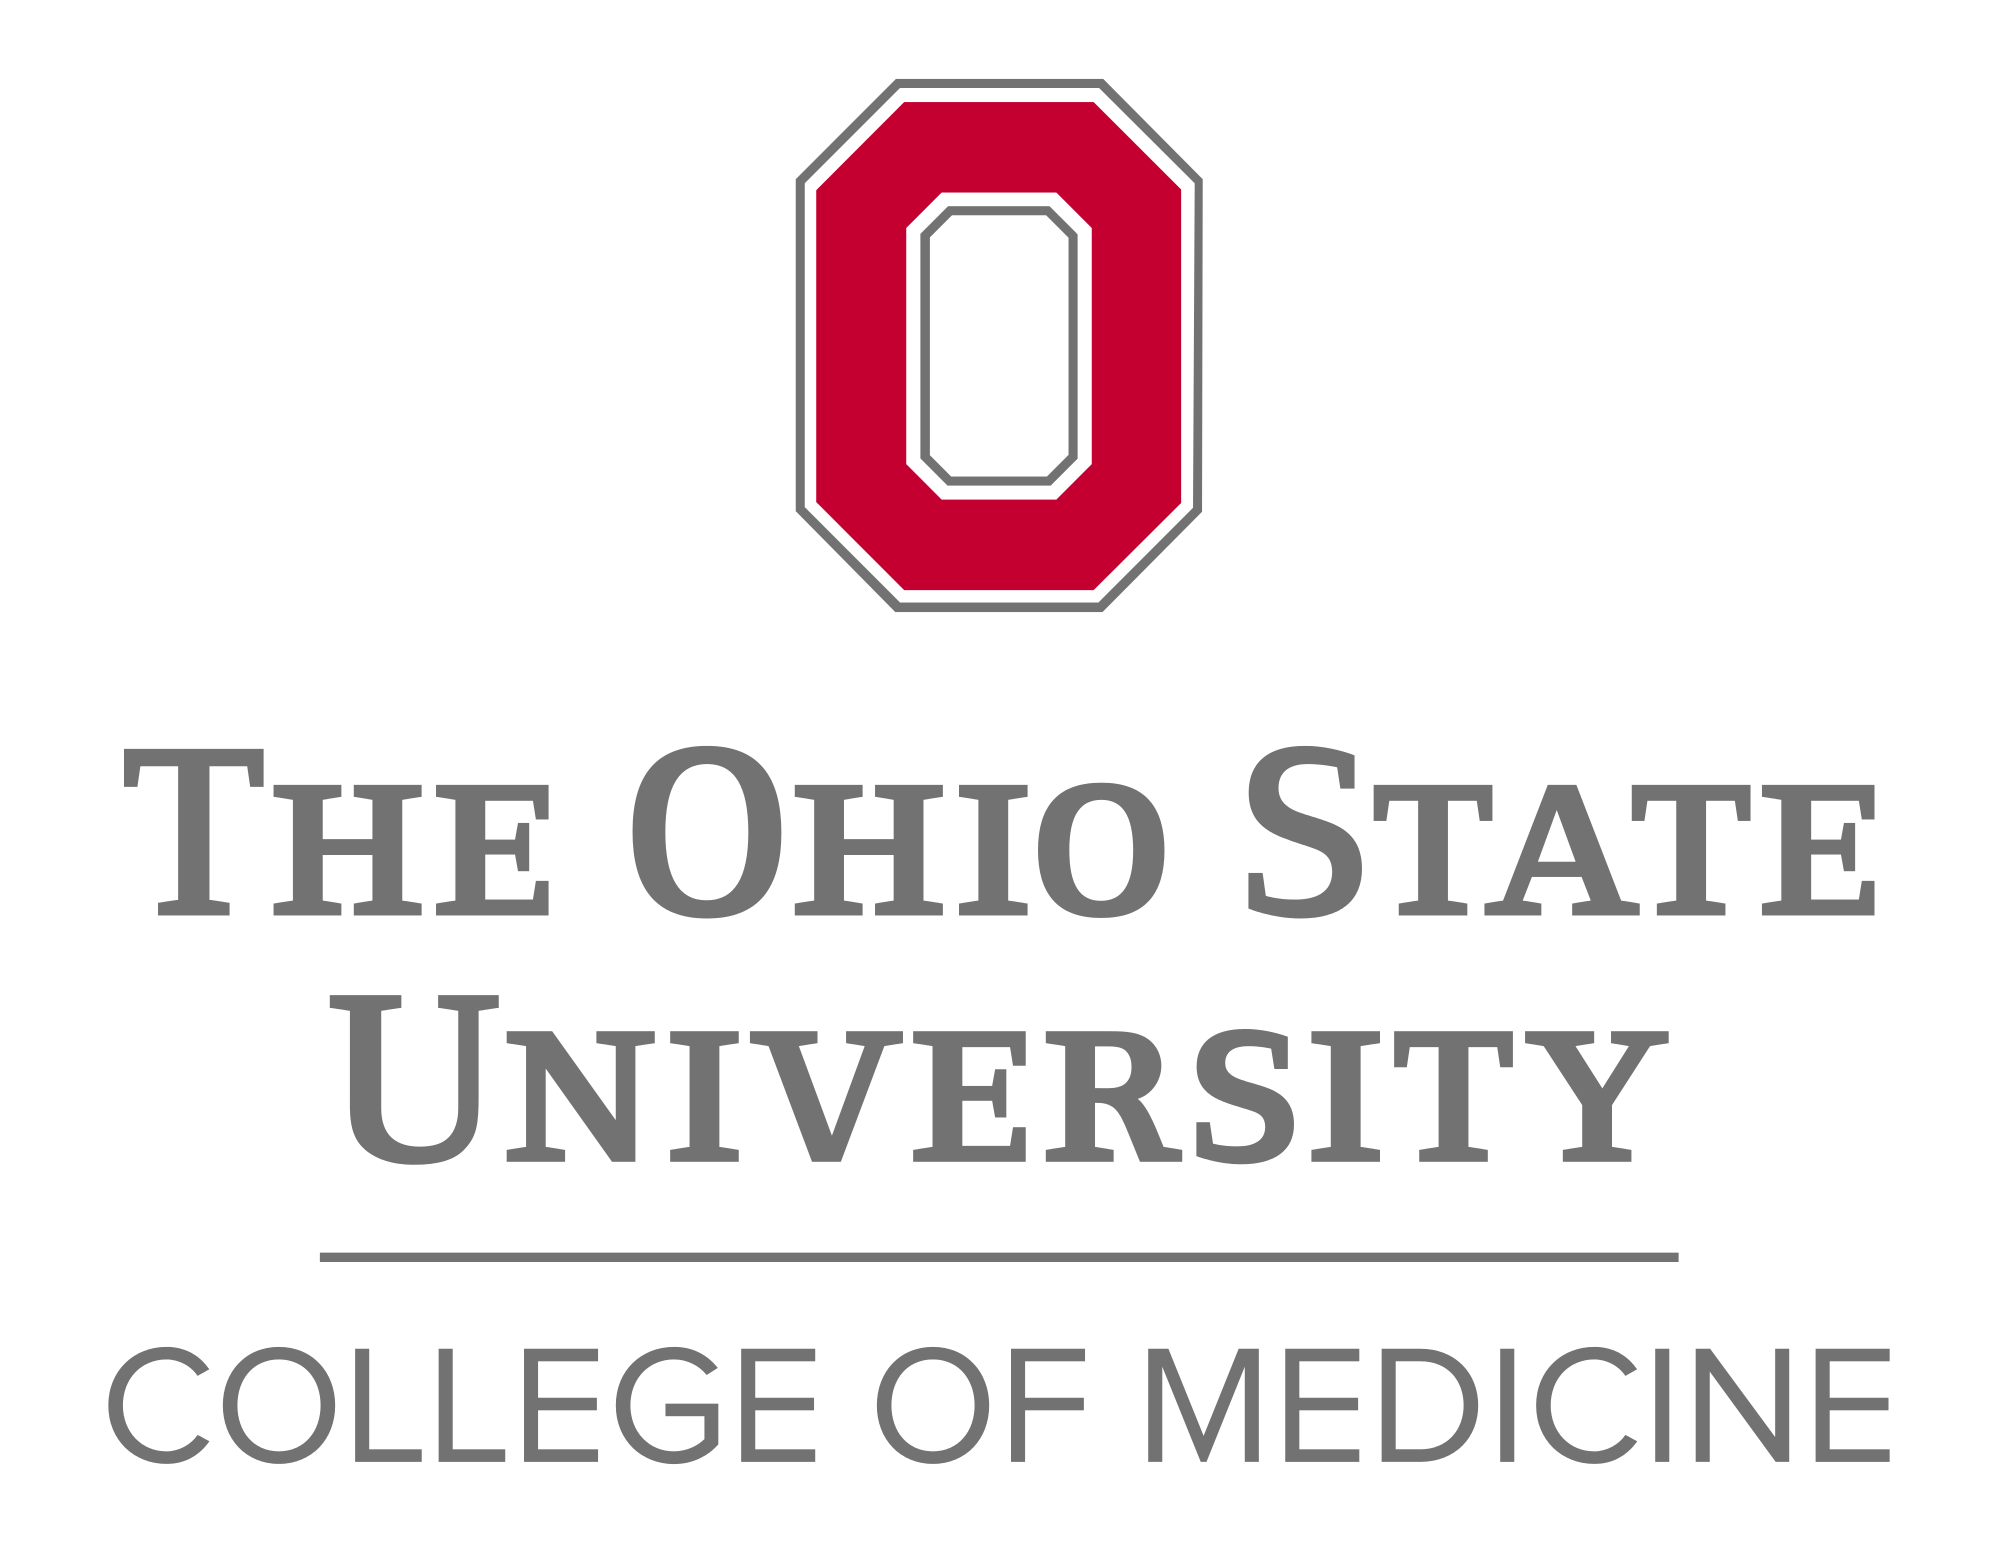 Ohio state o png. University college of medicine